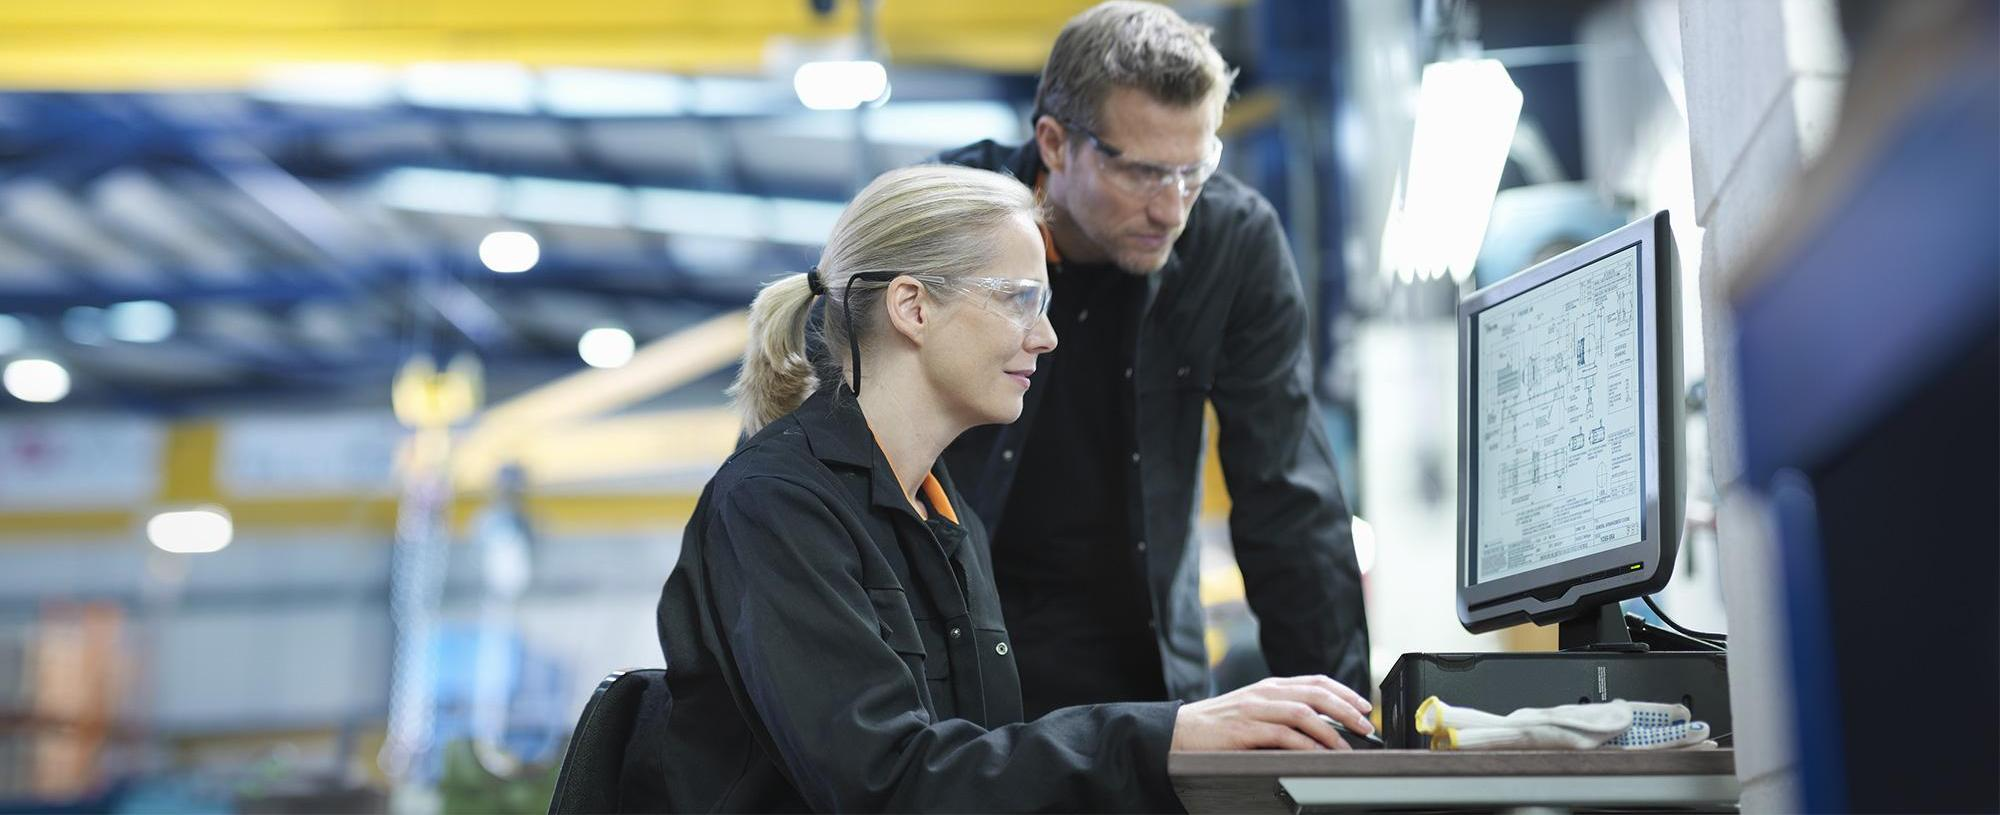 Man and woman in front of computer screen in factory